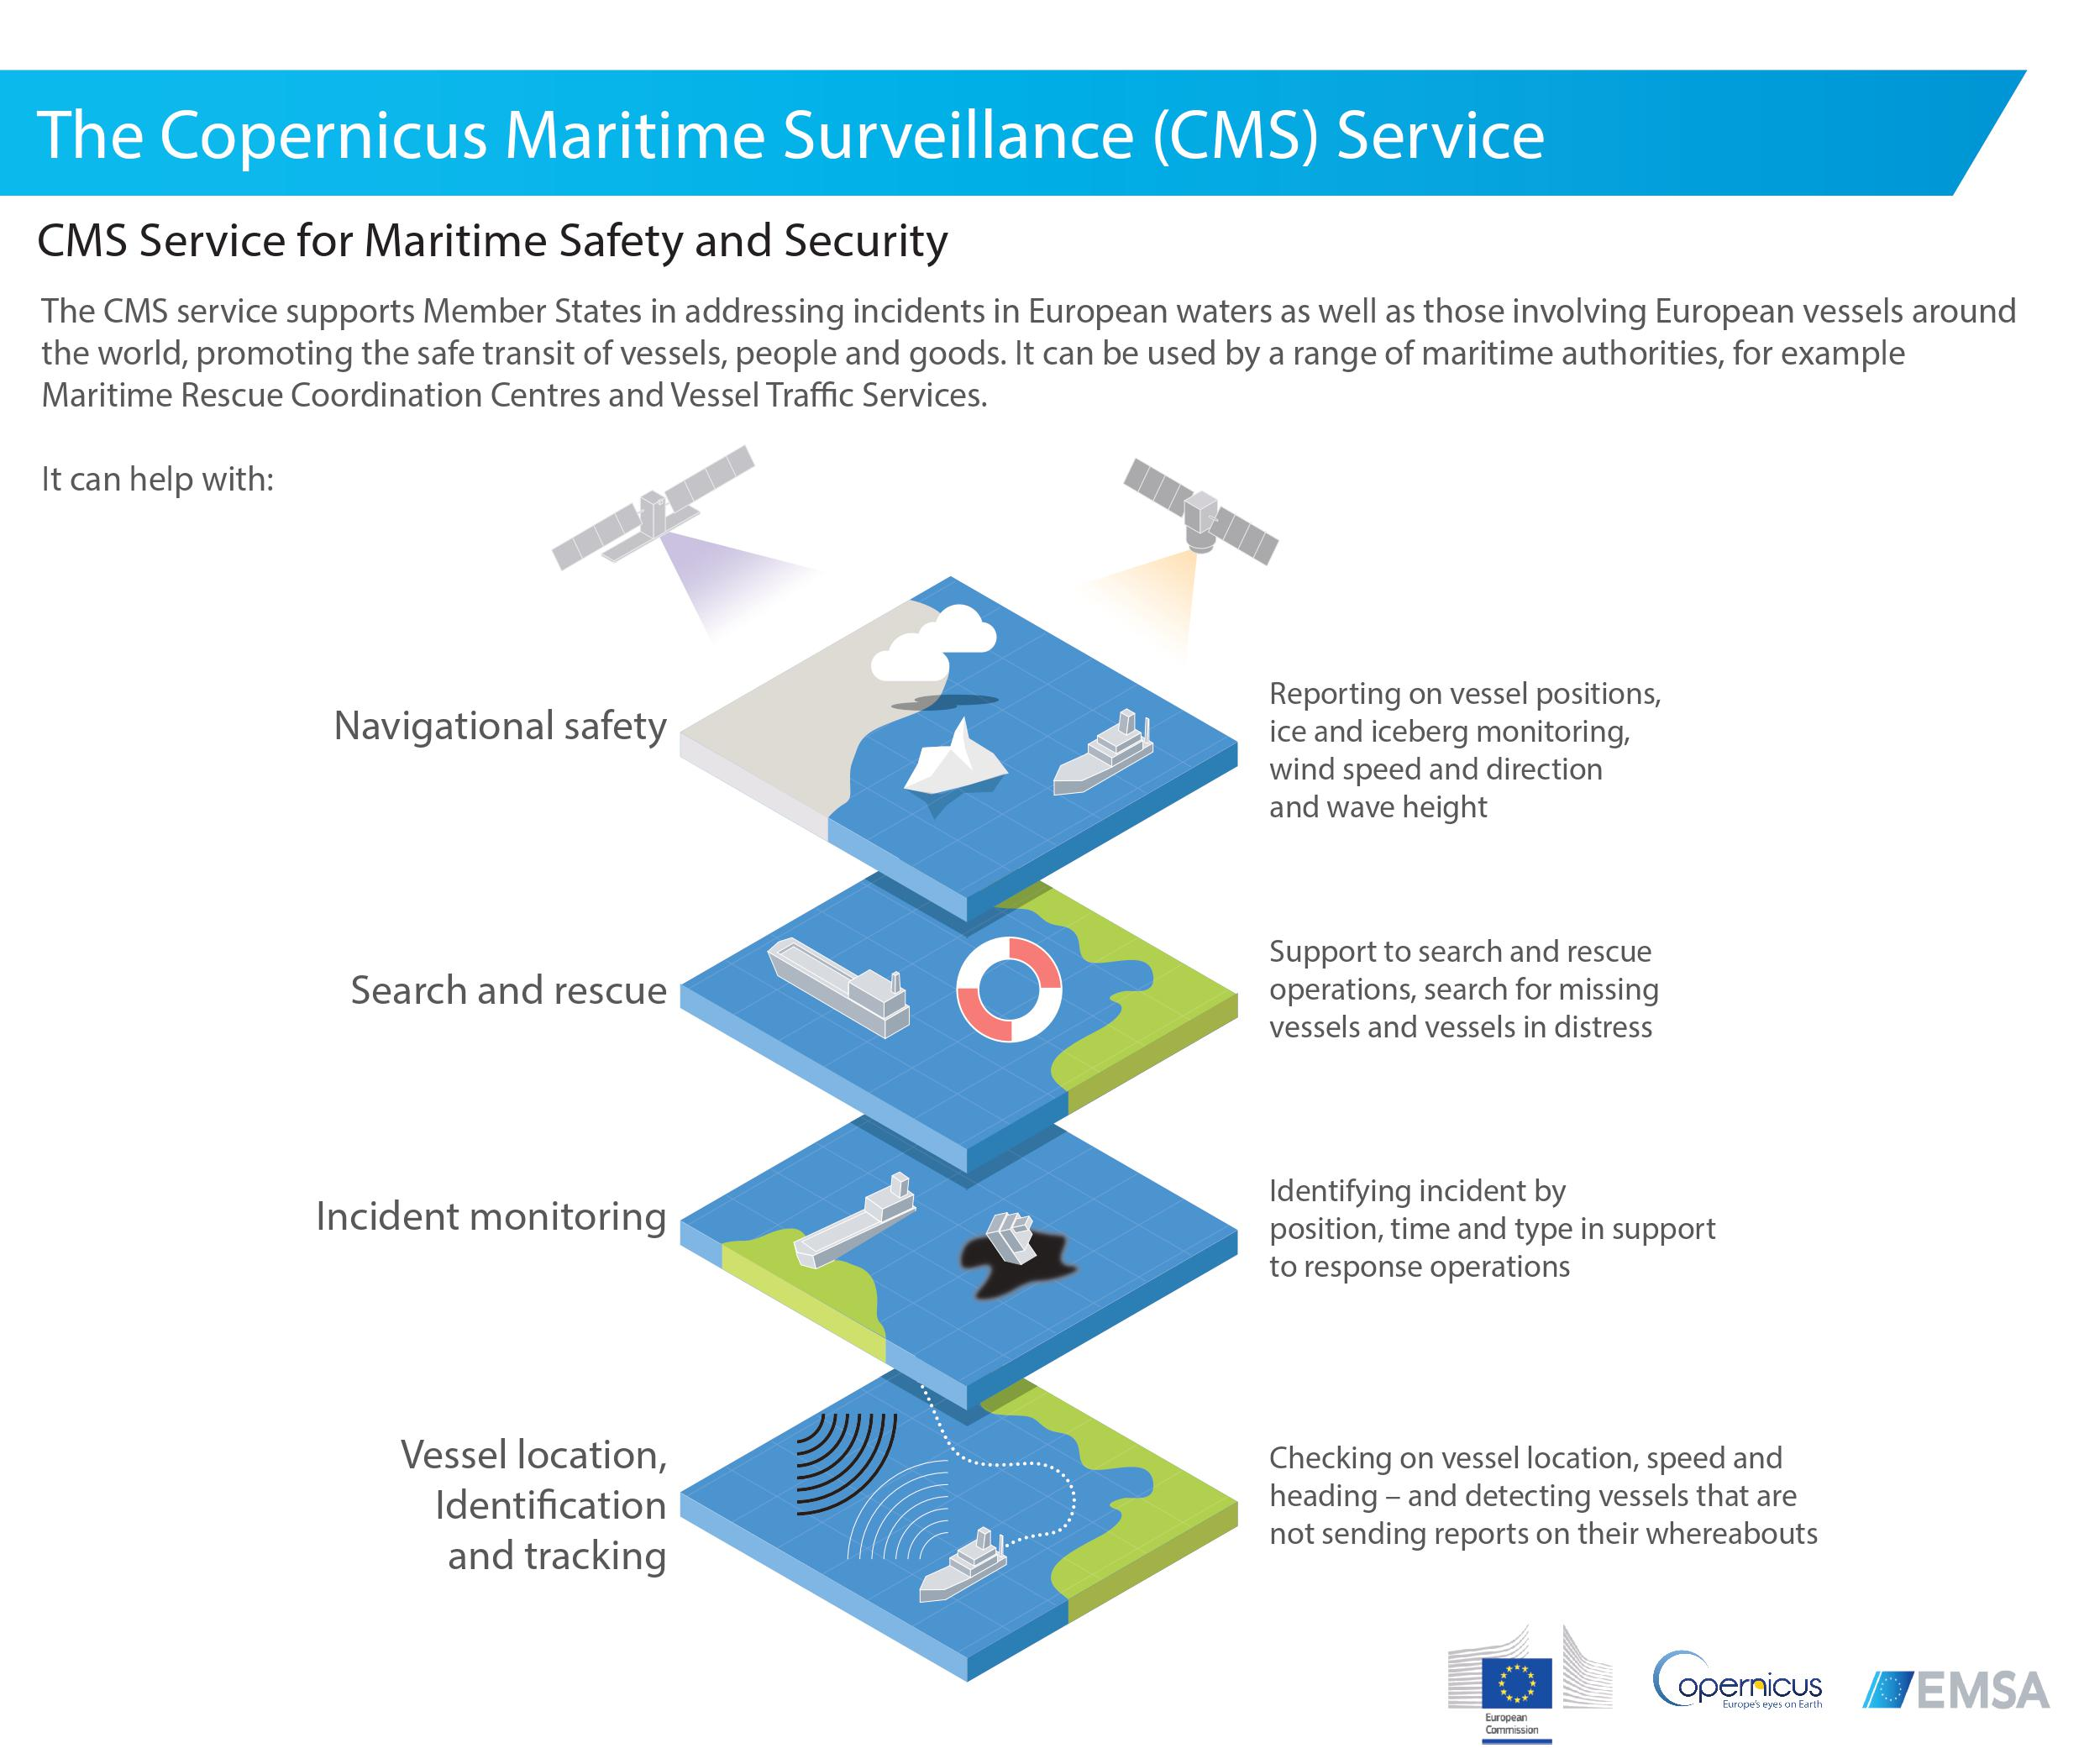 CMS Service Maritime Safety and Security Image 1